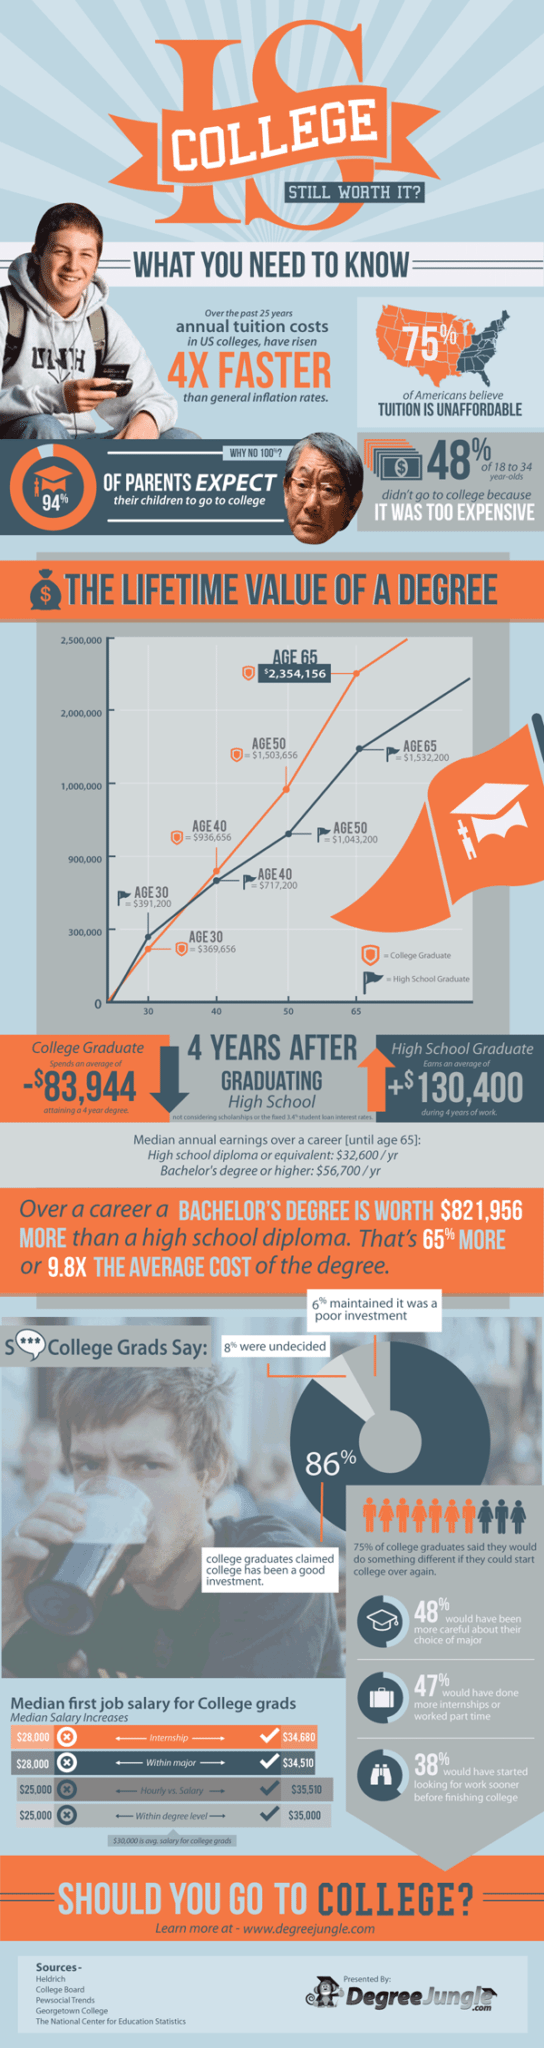 Is College Worth It? [infographic] 1